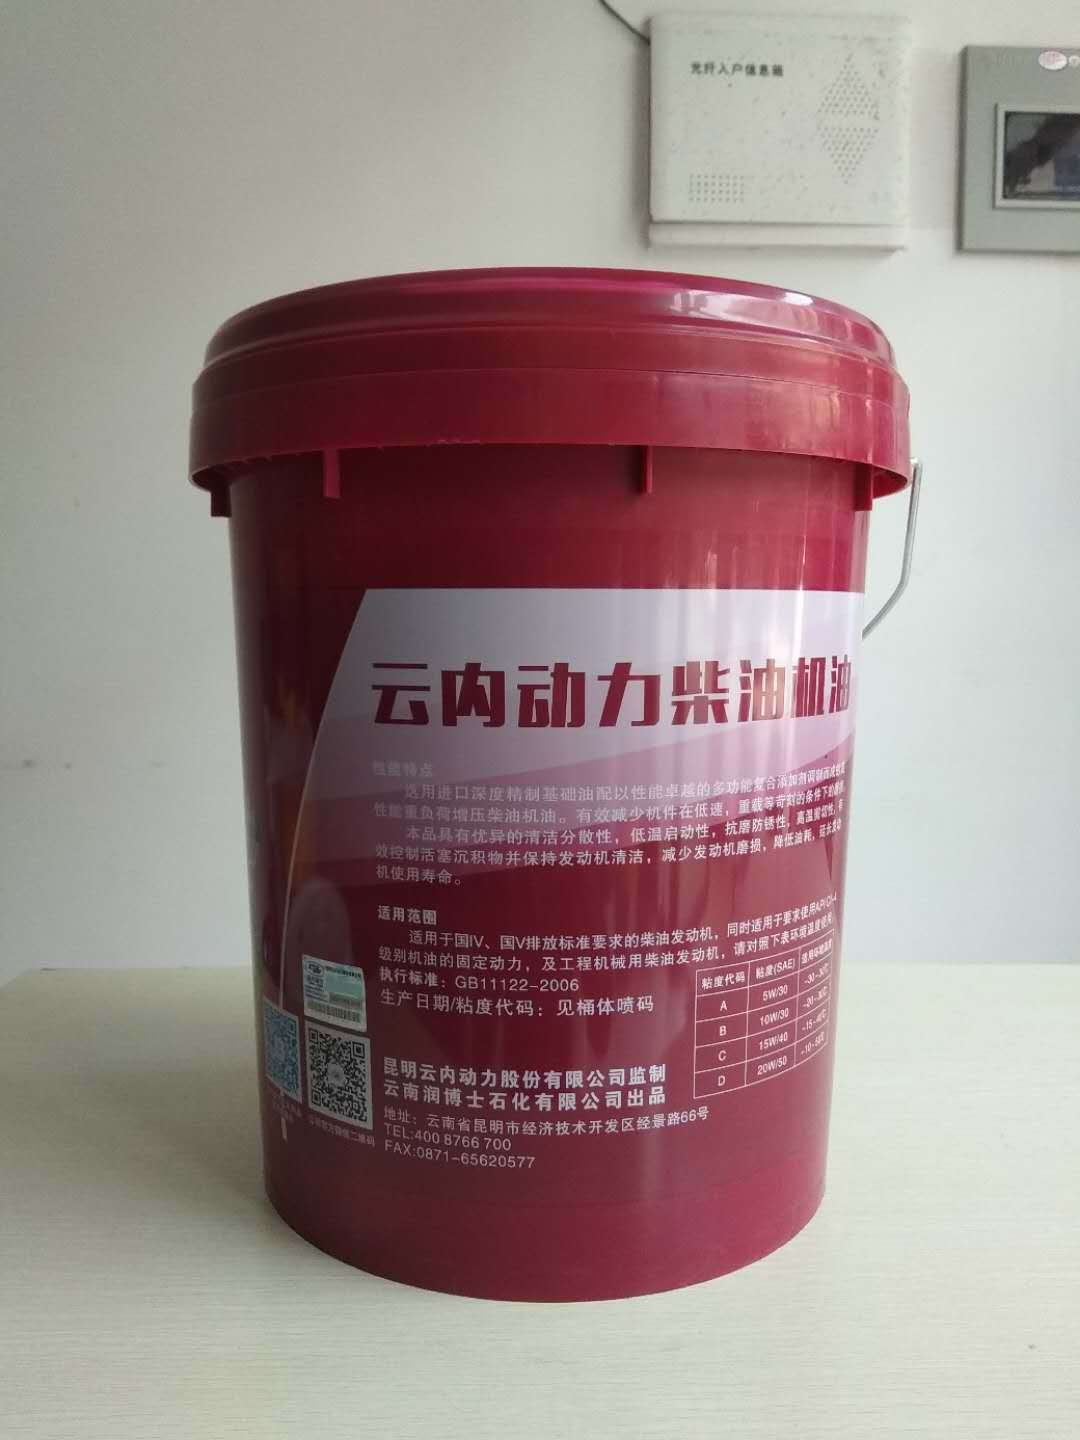 Yunnei Guowu special engine oil CI-4 20W/50 18L power source V8 special diesel engine oil factory